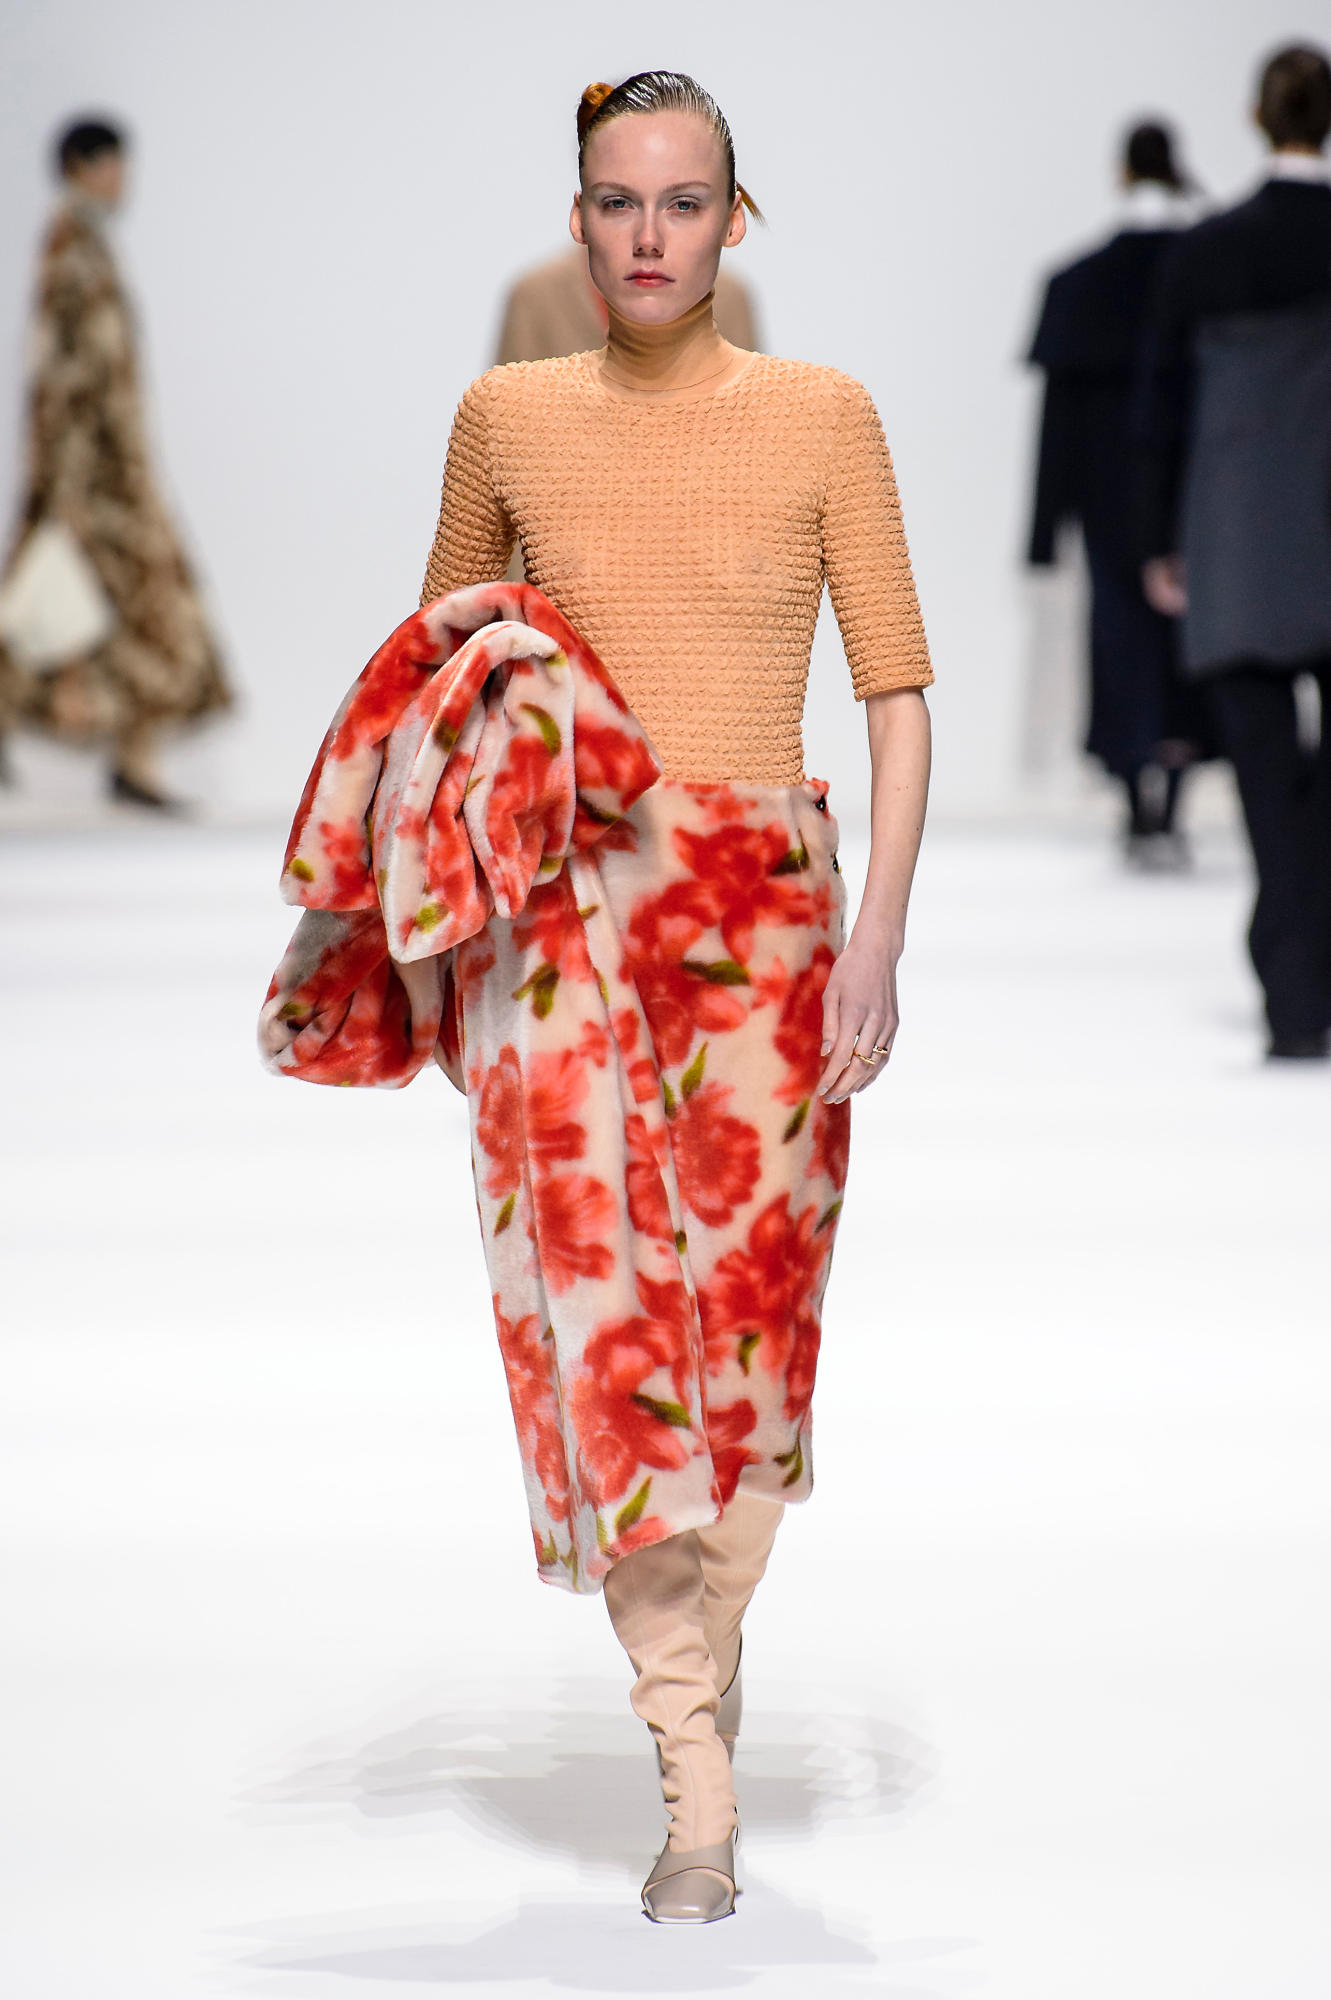 5 Milan Fashion Week Fall 2018 Trends You Don't Want to ...